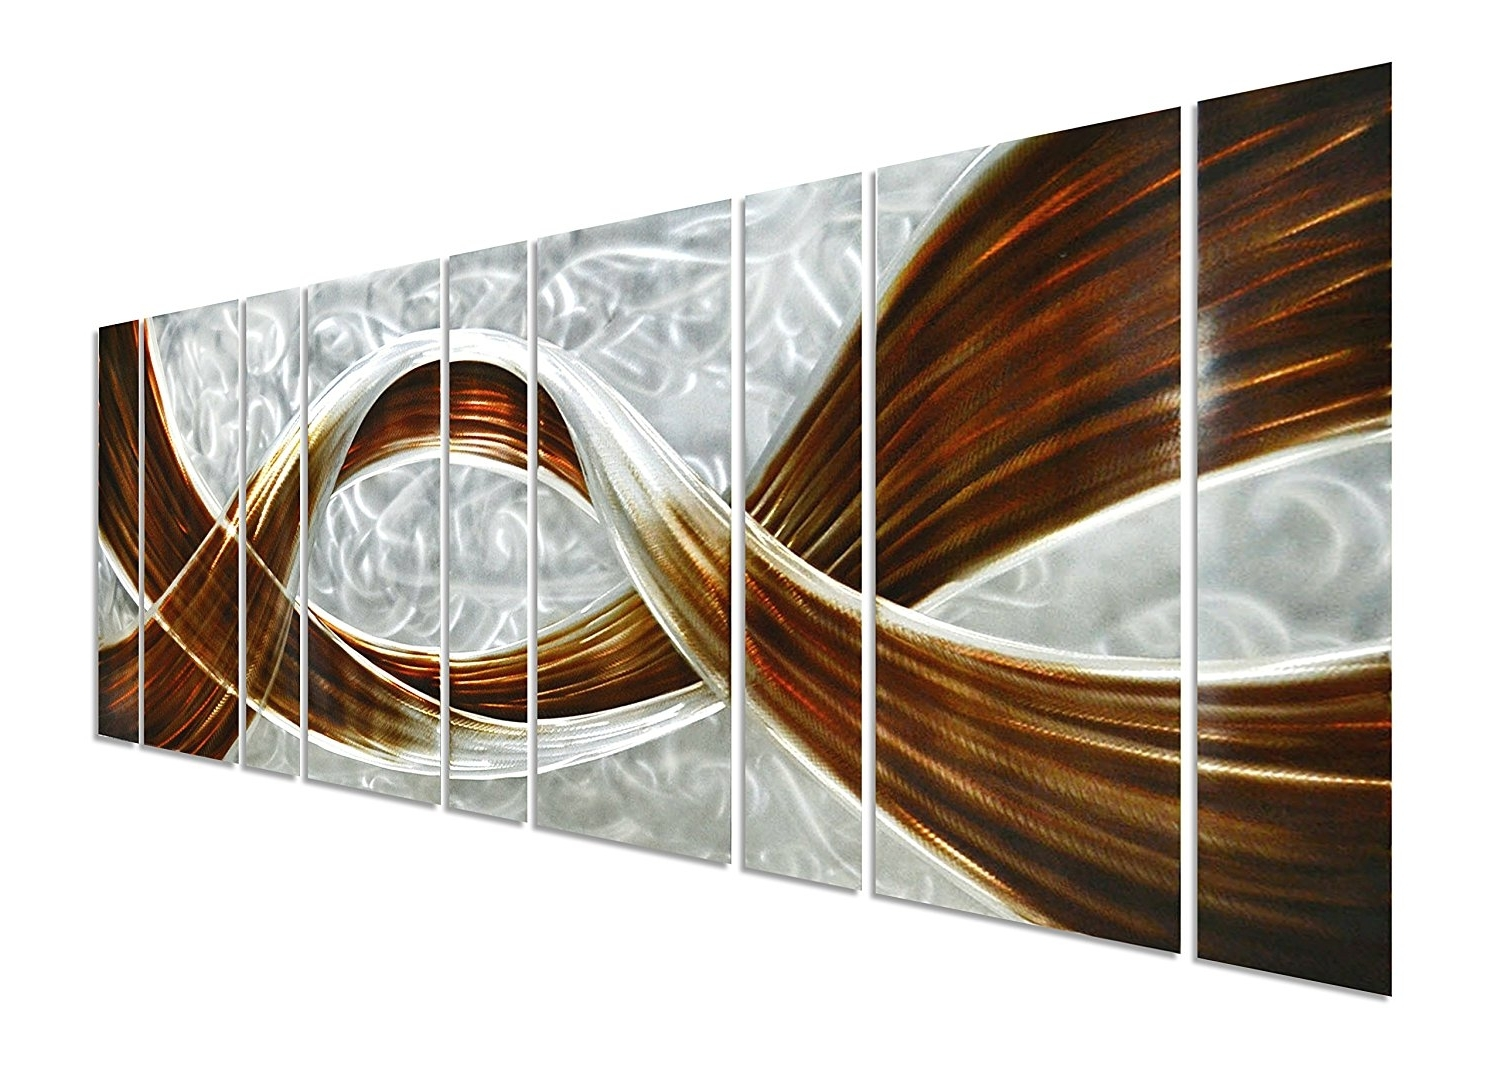 Most Popular Big Metal Wall Art Intended For Amazon: Pure Art Caramel Desire Metal Wall Art, Giant Scale (View 9 of 15)